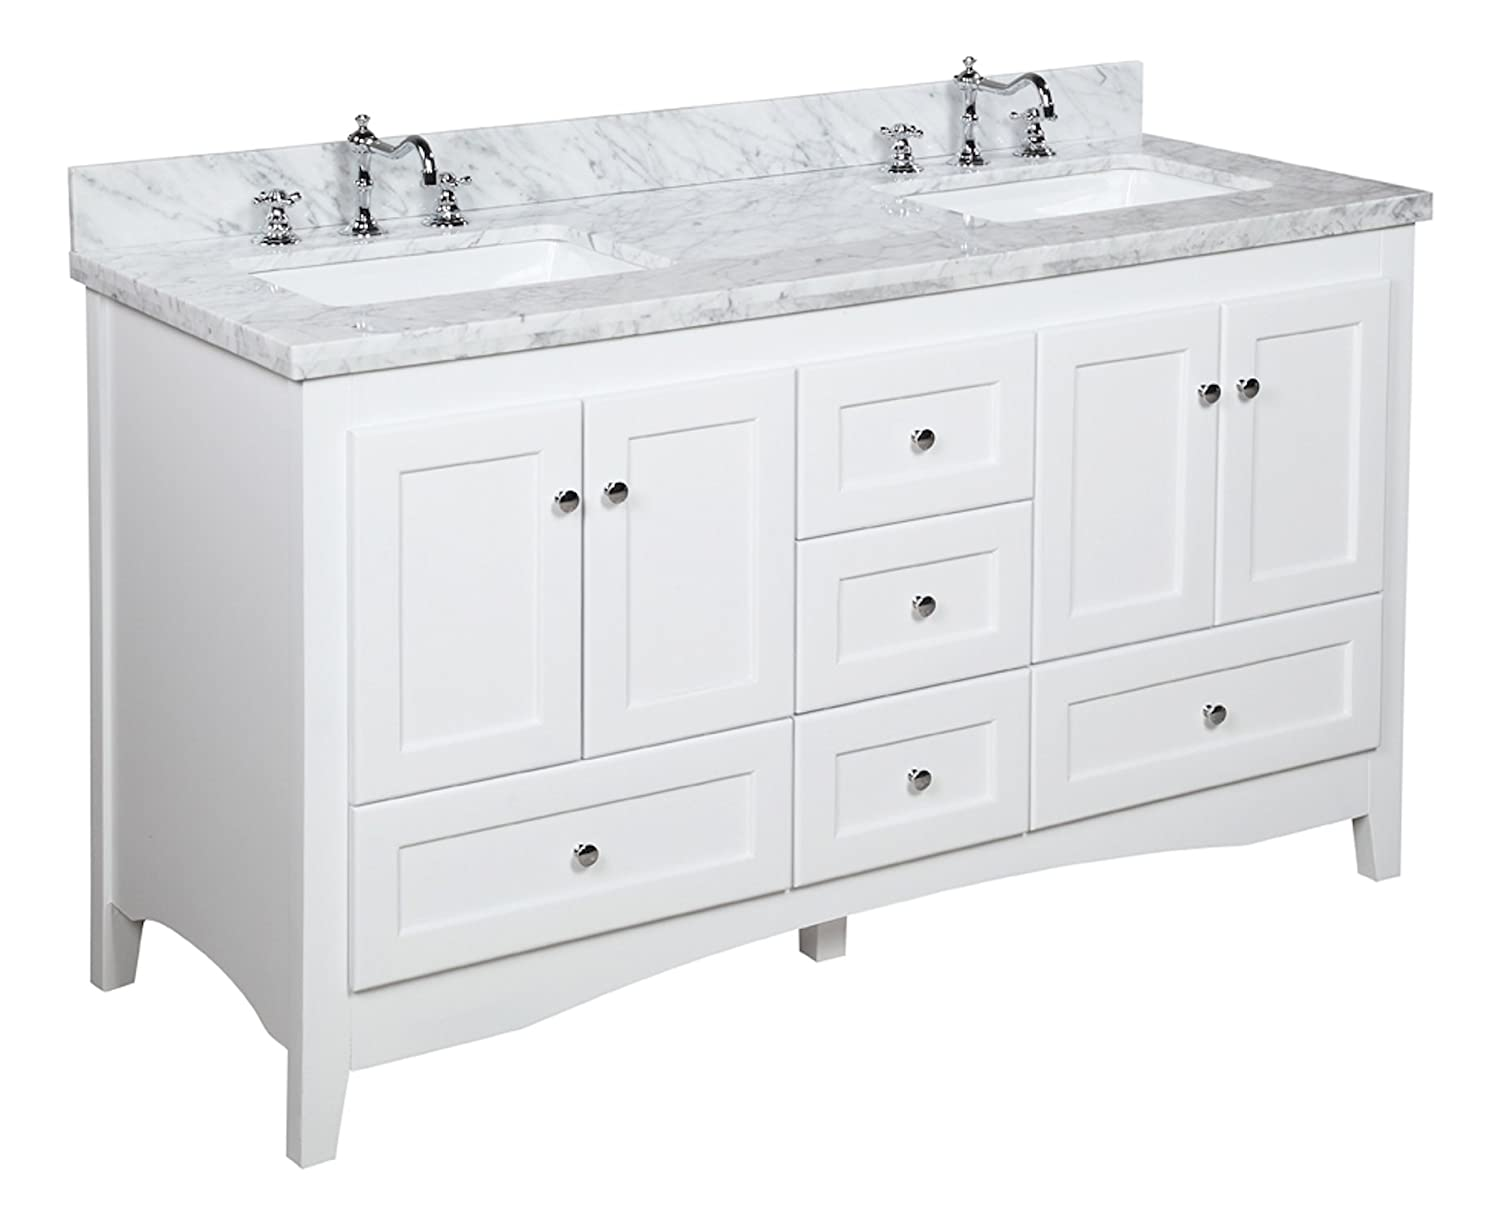 60 white bathroom vanity - 60 White Bathroom Vanity 21